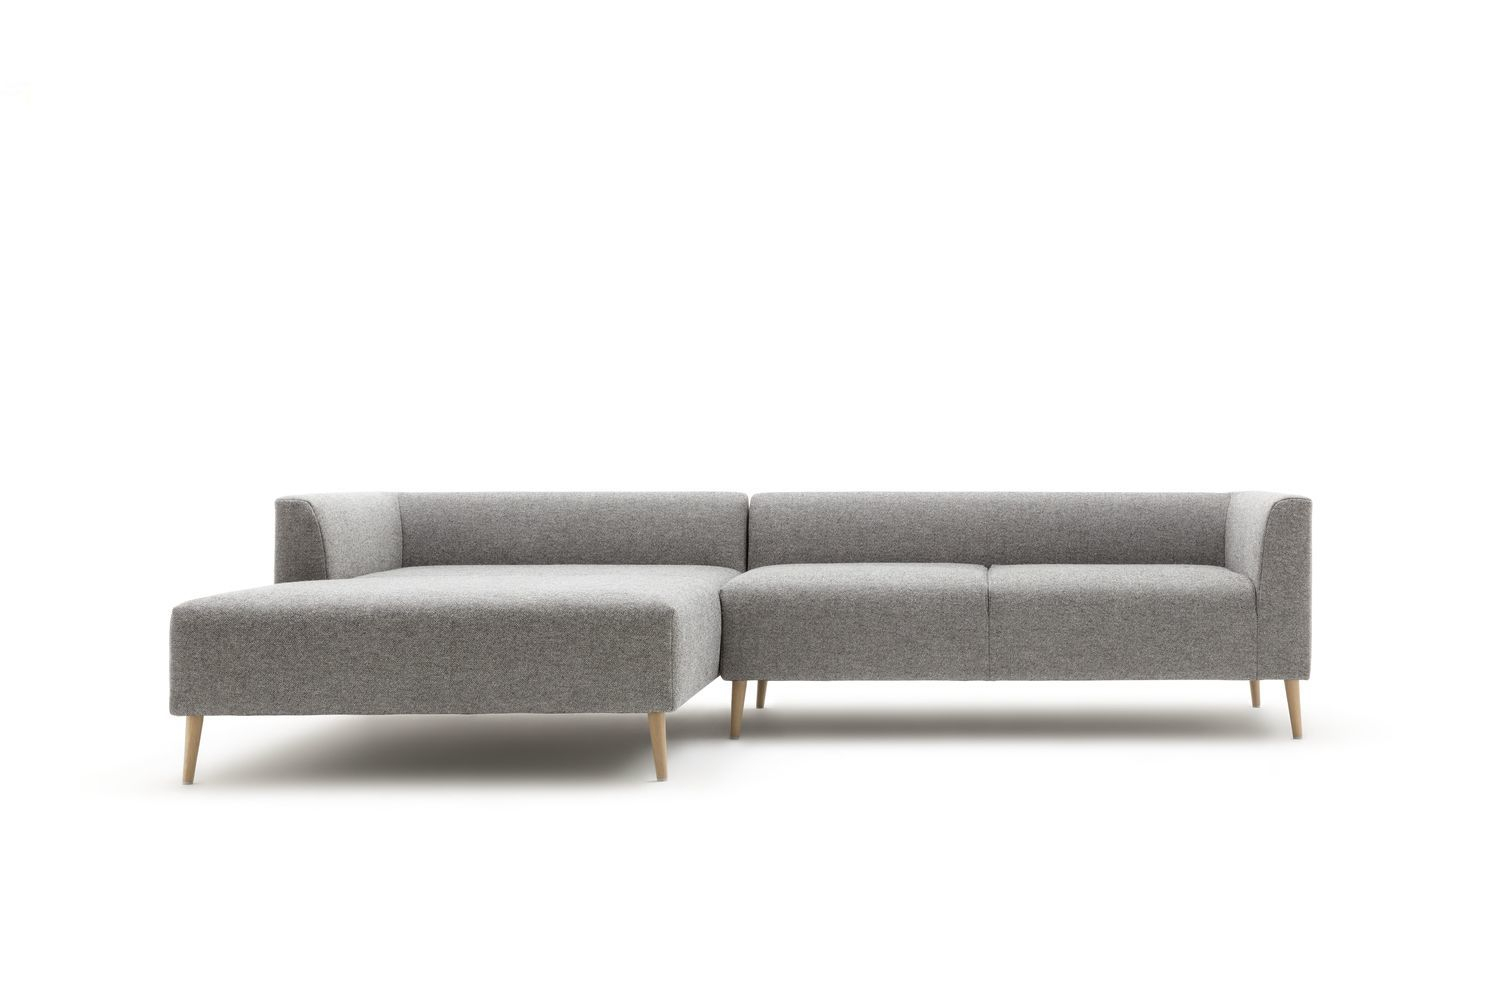 Freistil Sofa Freistil Rolf Benz Freistil 162 Ecksofa Shop I Design-bestseller.de